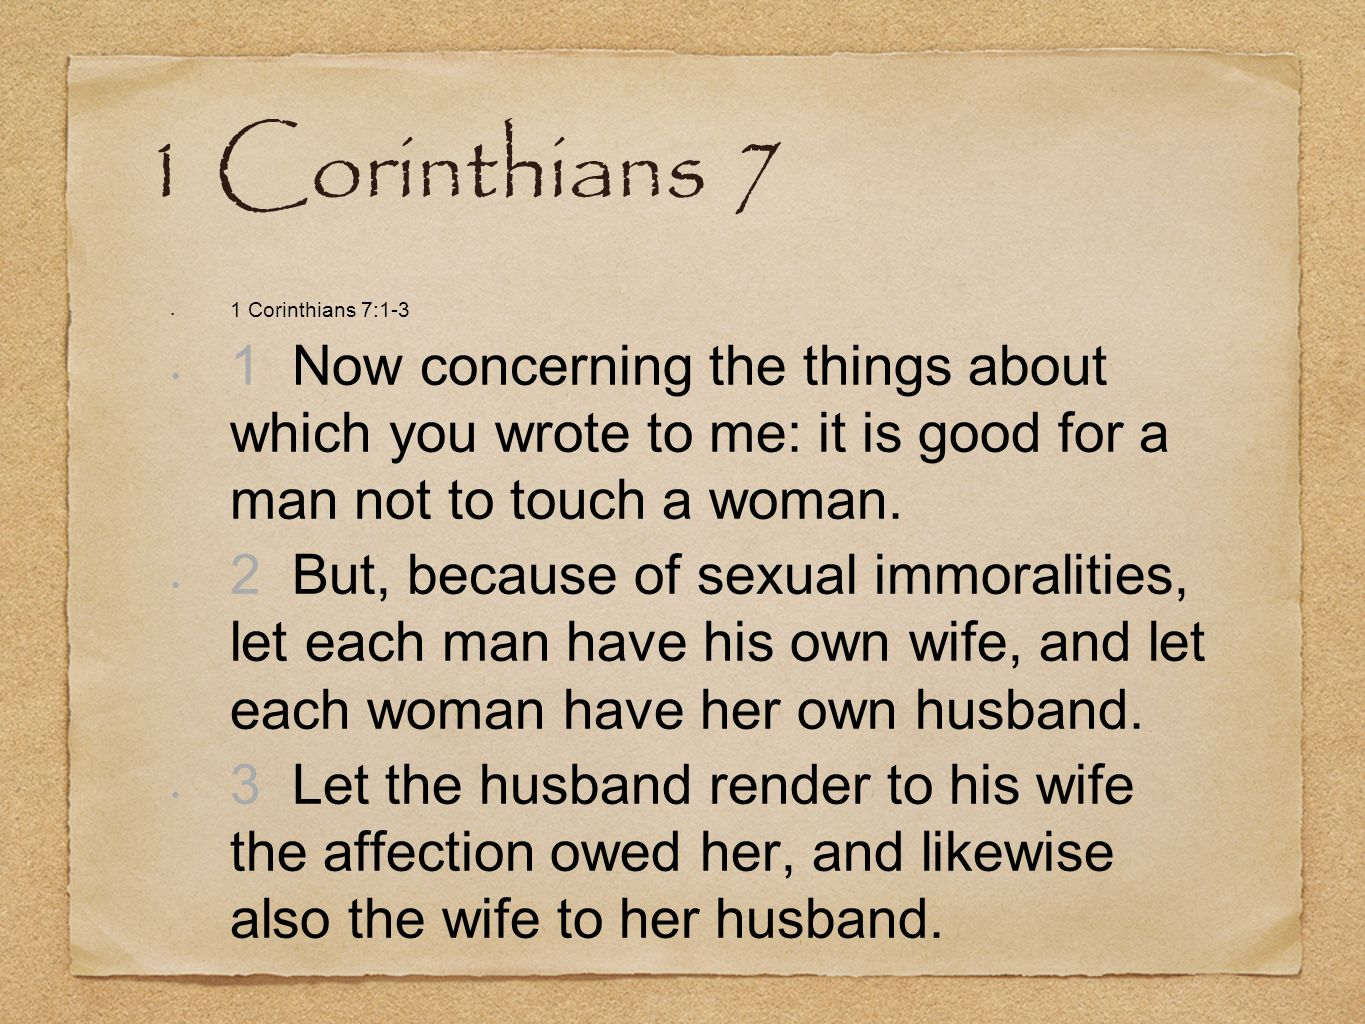 1 Corinthians 7 1 Corinthians 7: Now concerning the things about which you wrote to me: it is good for a man not to touch a woman.